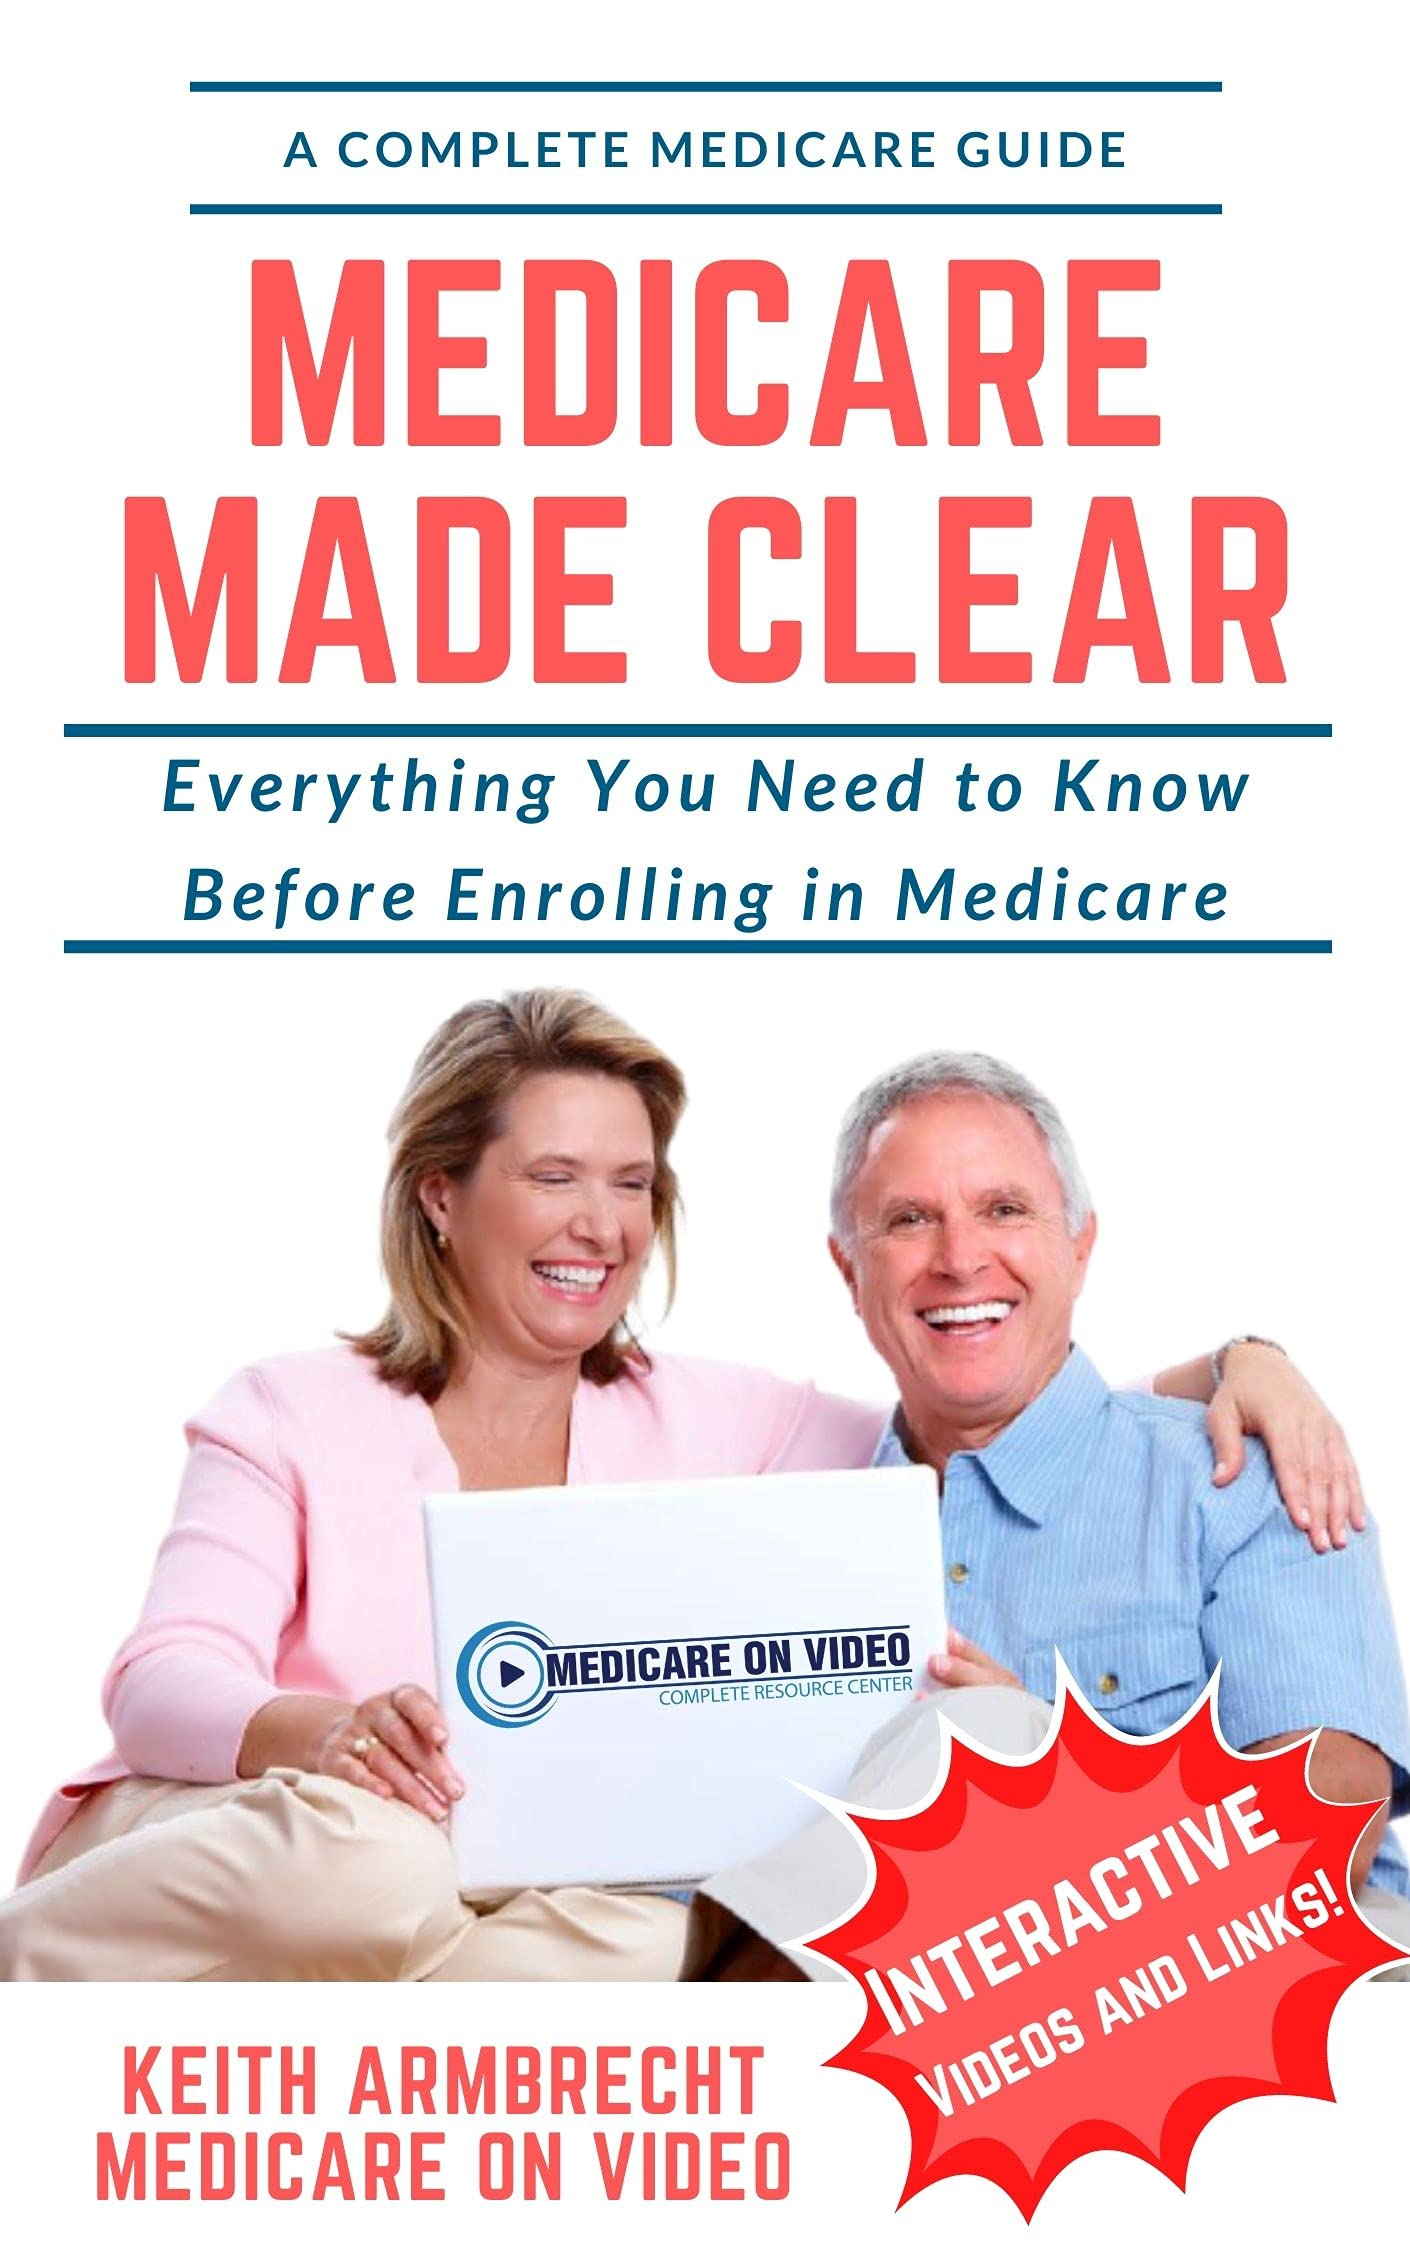 Medicare Made Clear: Everything You Need to Know Before Enrolling in Medicare